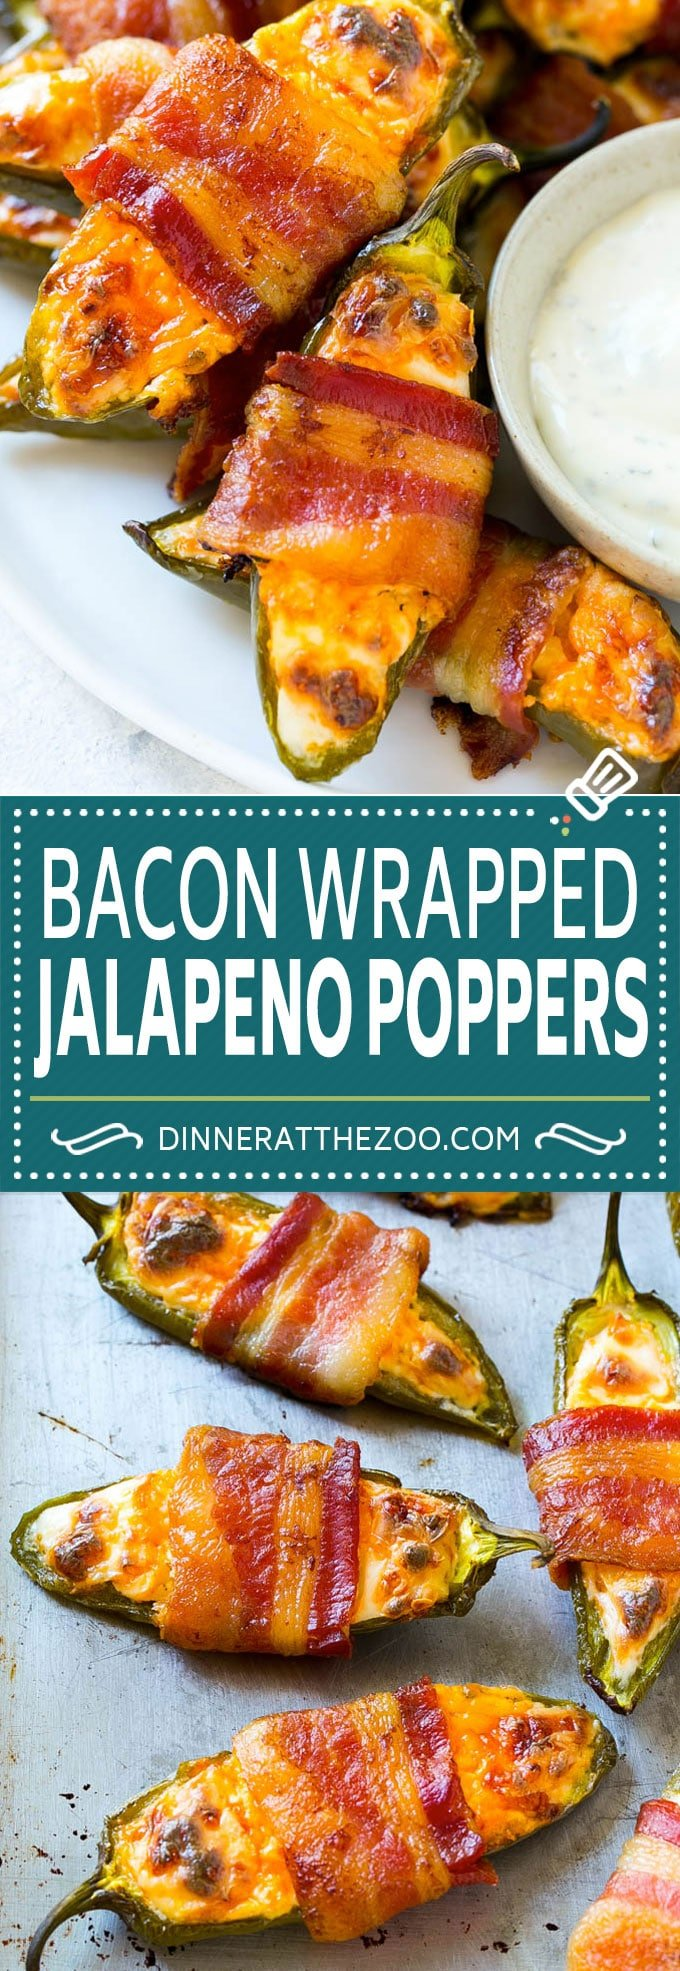 Bacon Wrapped Jalapeno Poppers Recipe   Baked Jalapeno Poppers   Bacon Appetizer #bacon #jalapenos #poppers #appetizer #snack #lowcarb #keto #dinneratthezoo